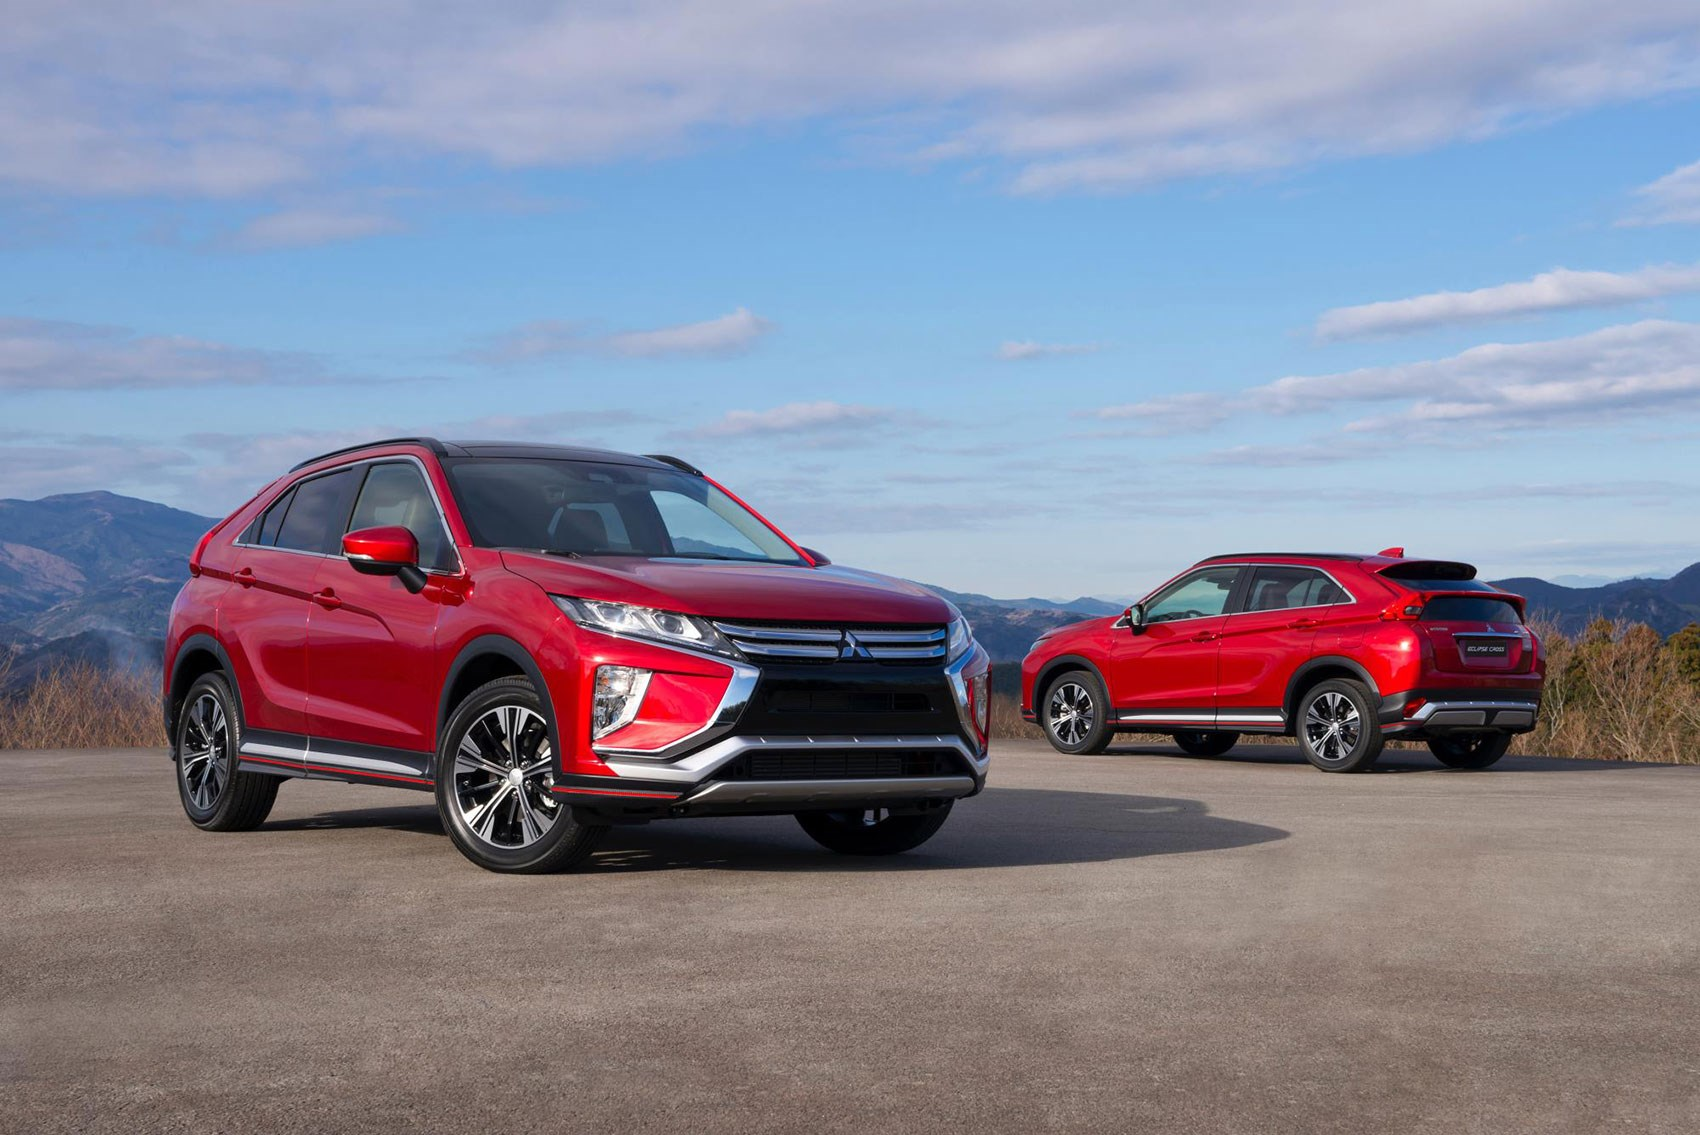 Mitsubishi Eclipse Cross Production Car At Geneva 2017 Unveiled The Motor Show New